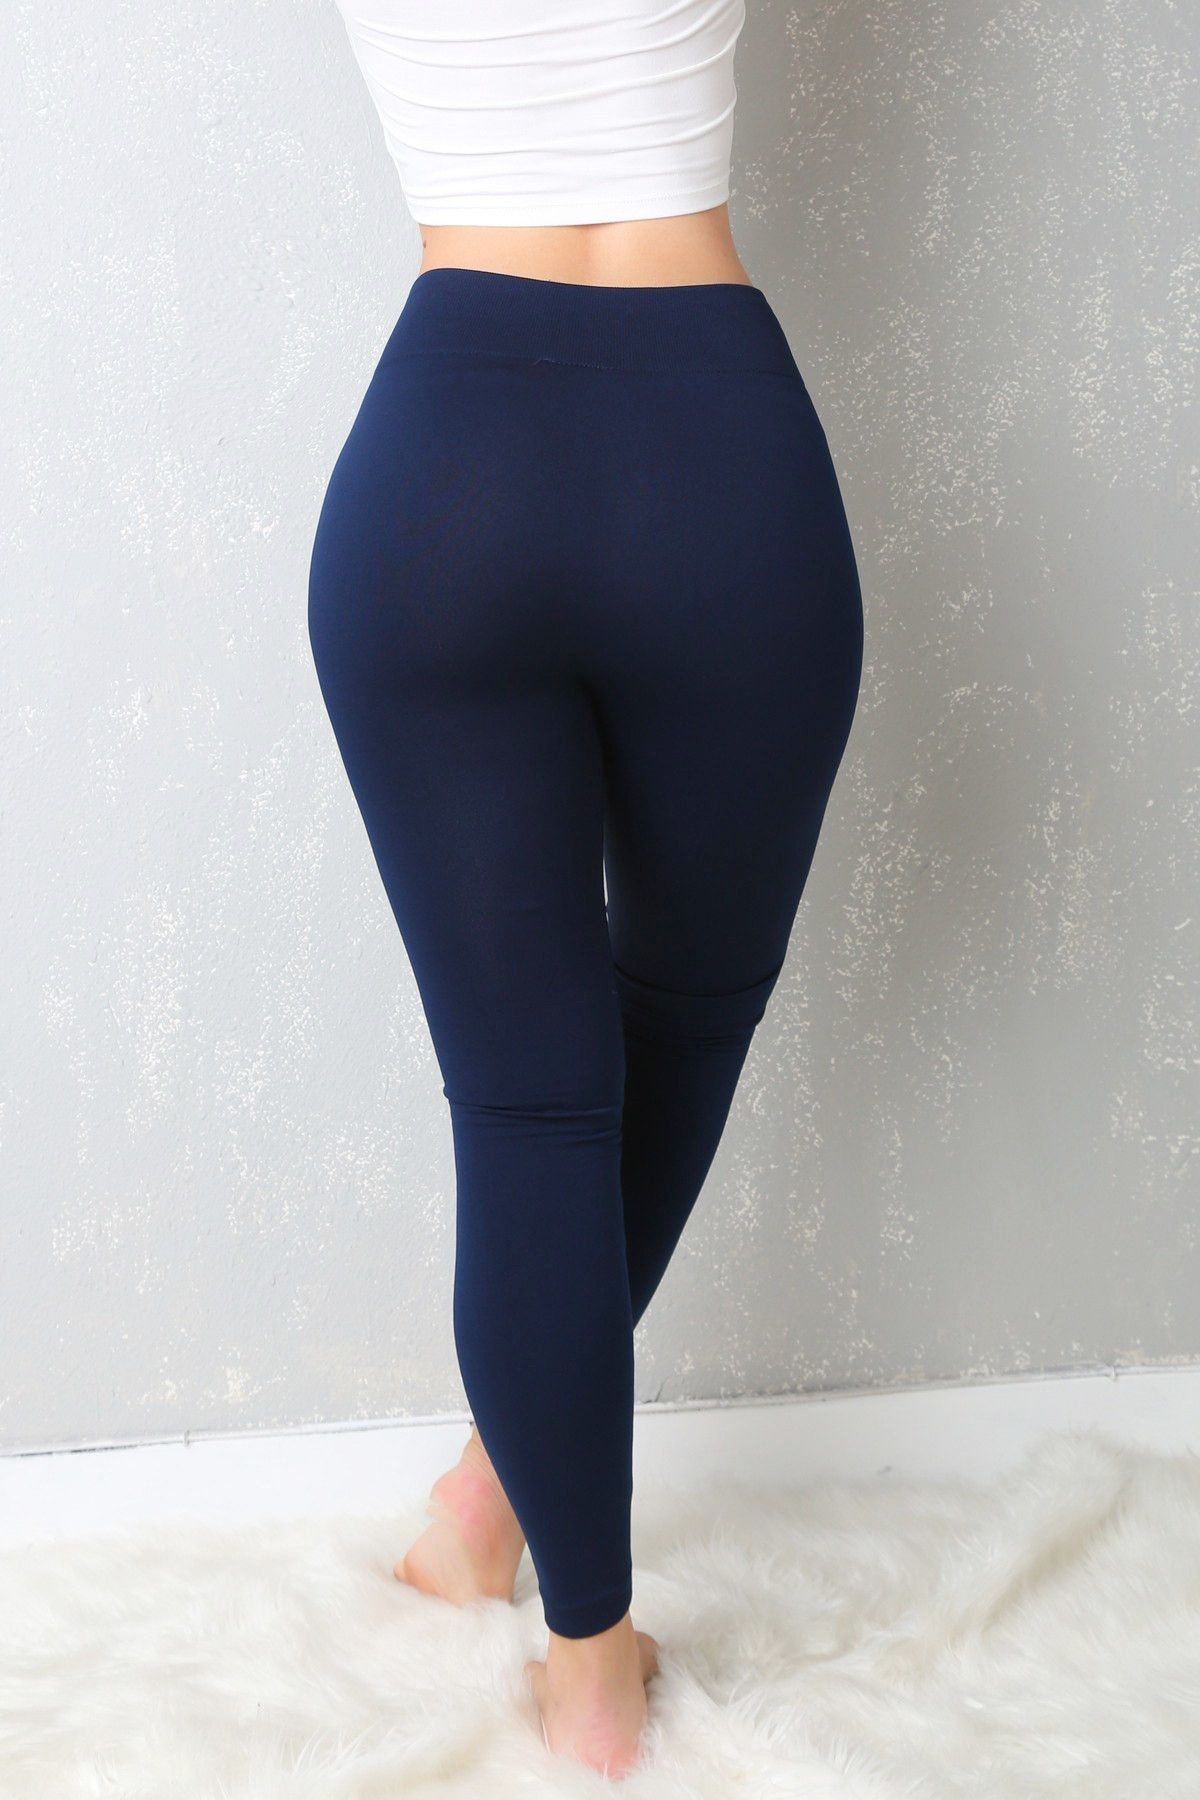 e74175d3b8065 My Favorite Leggings Ever Navy Blue - Fashion Effect Store - 3